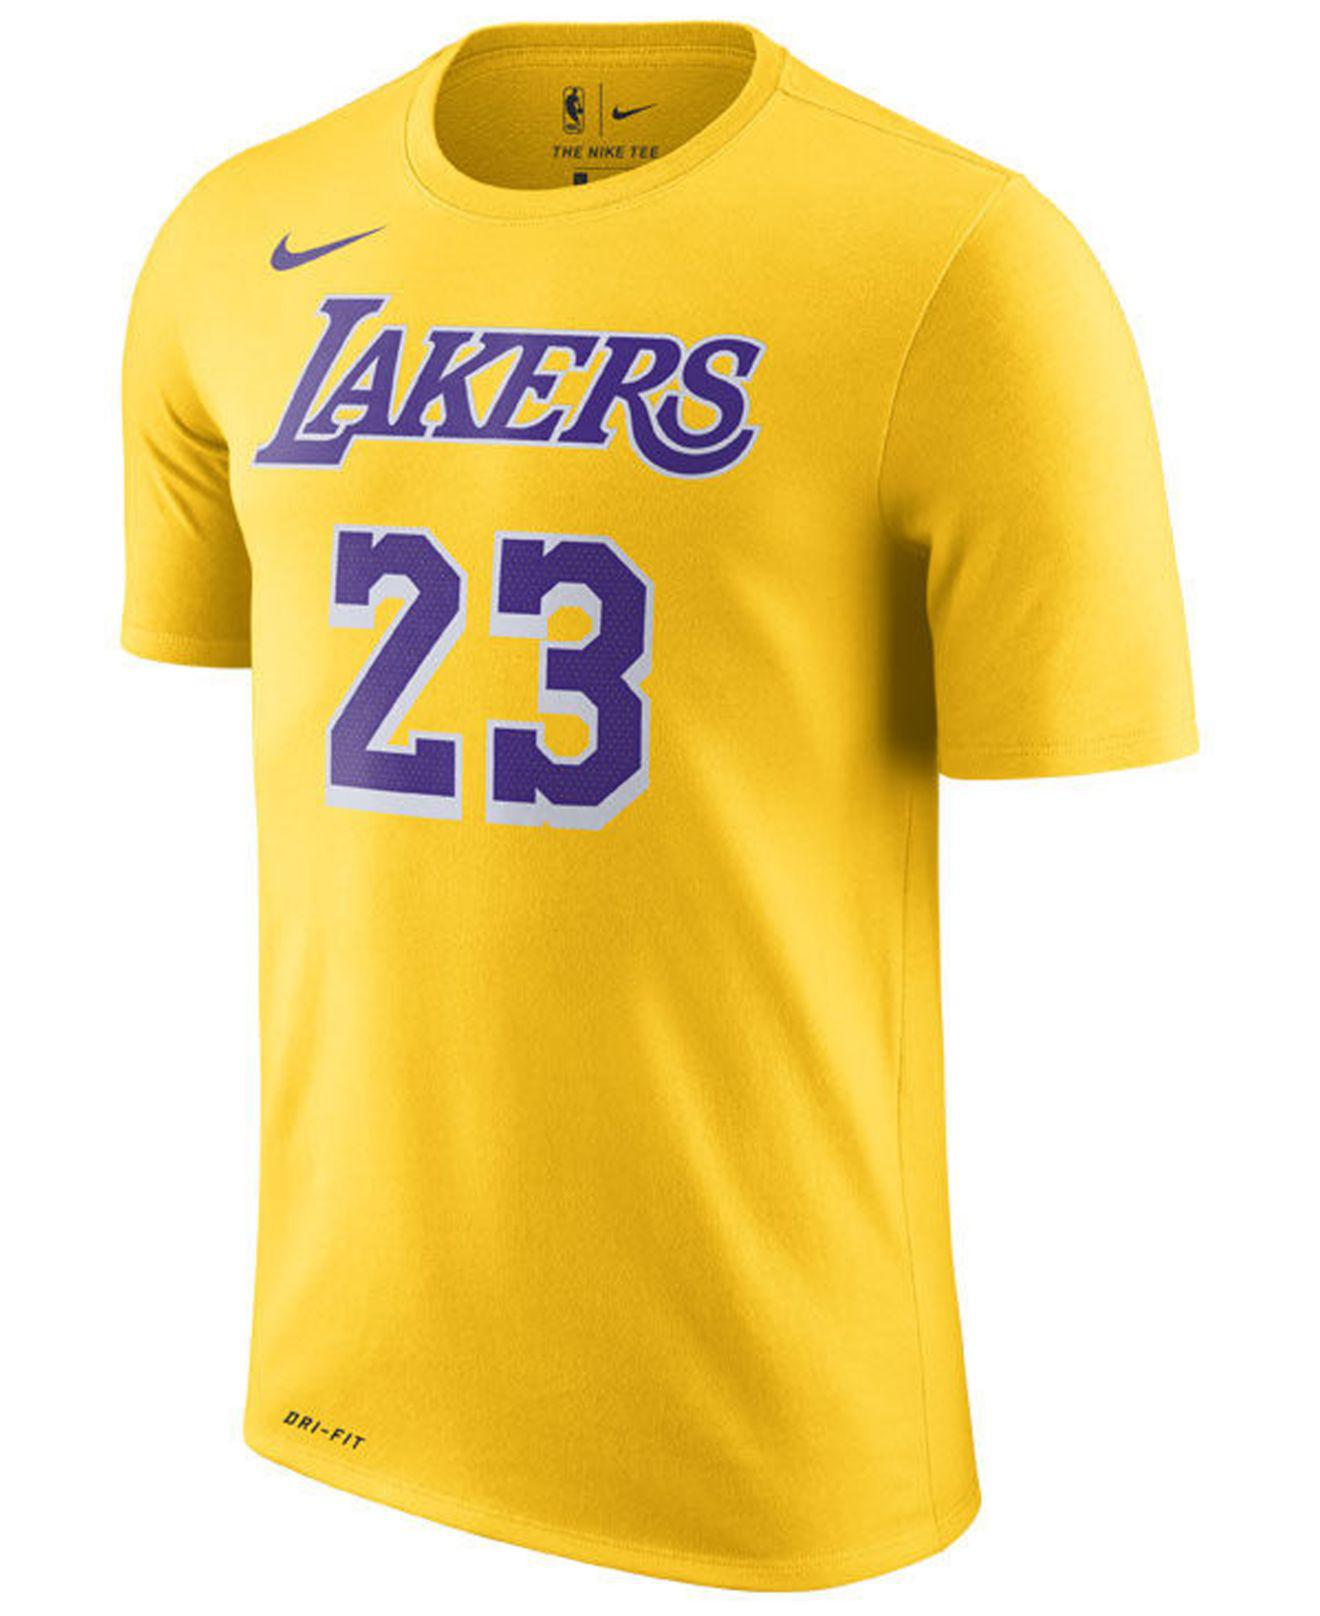 c71f5c4f Nike - Yellow Lebron James Los Angeles Lakers Icon Player T-shirt for Men  -. View fullscreen